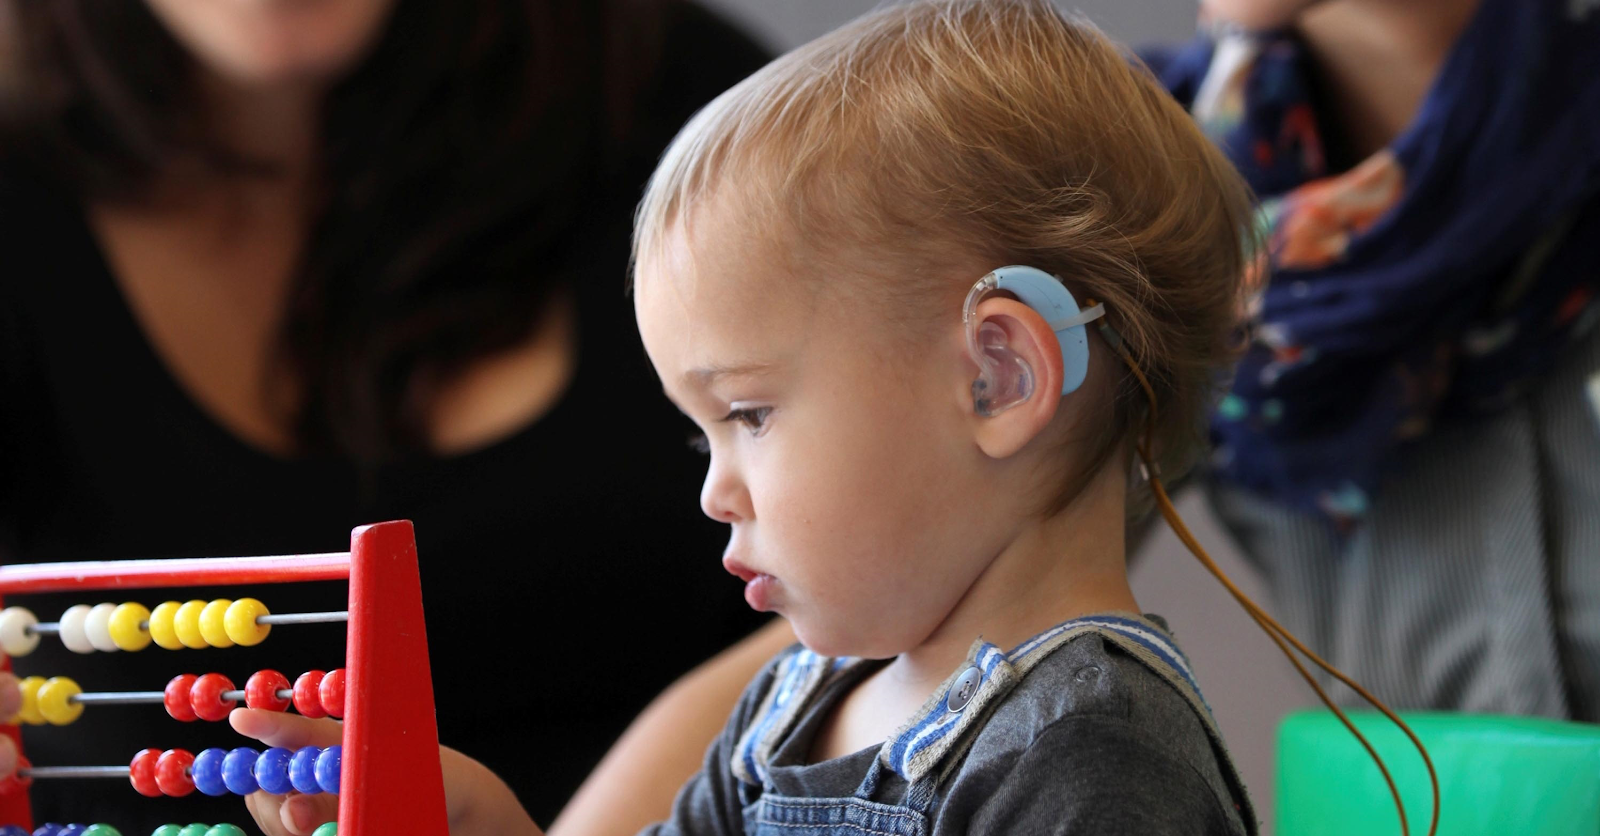 A young child with a hearing aid playing.